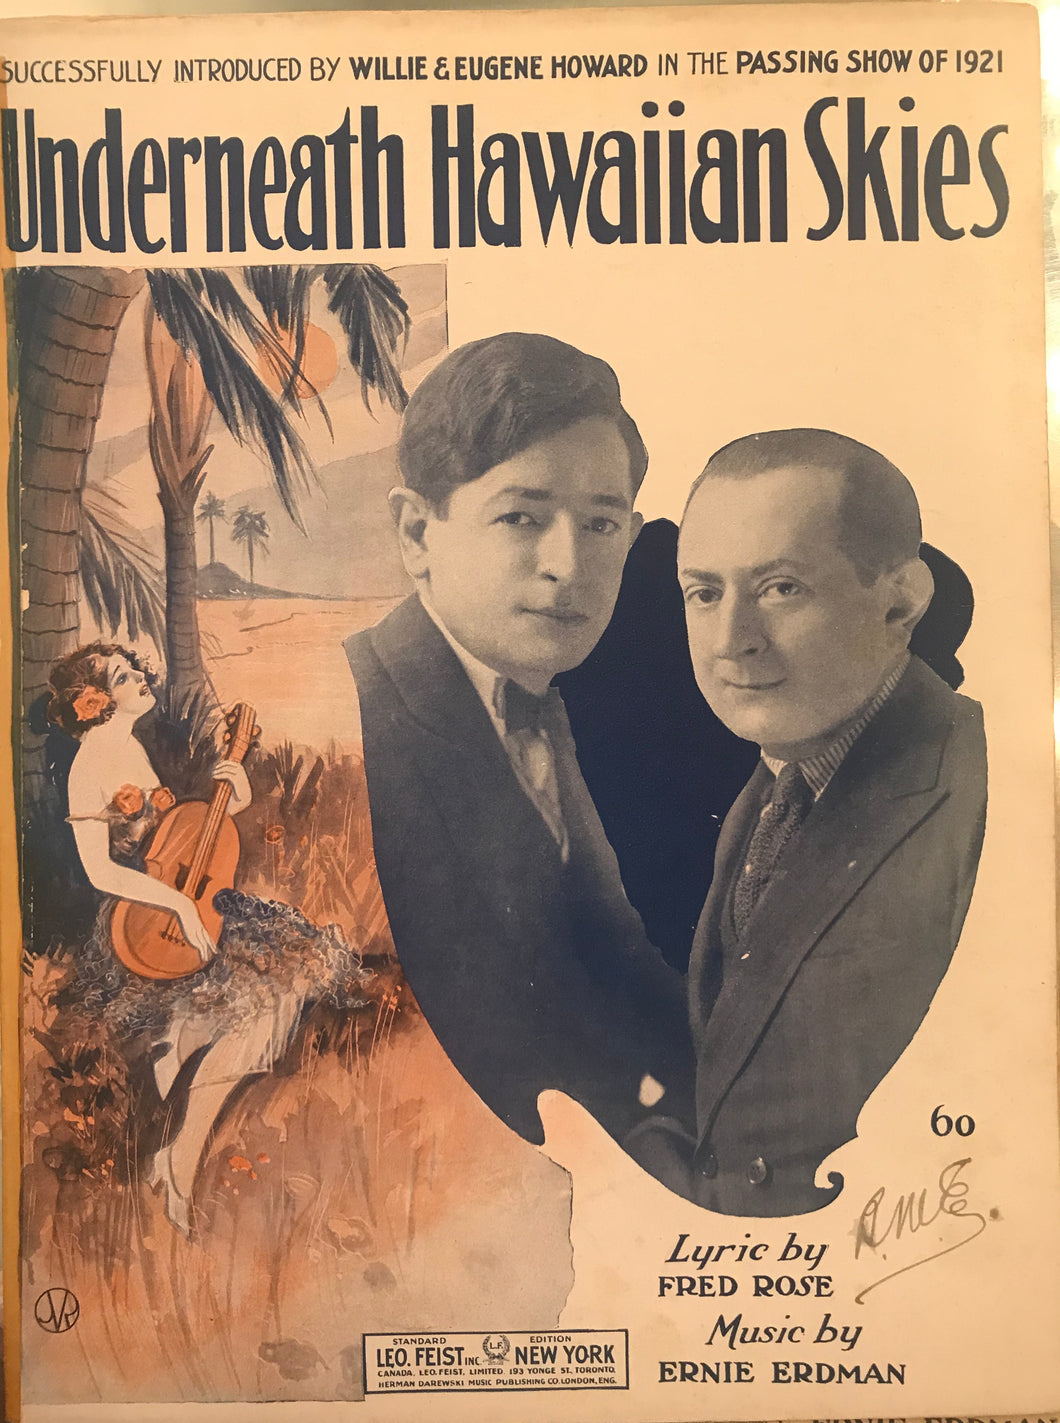 Hawaiian Sheet Music: 'Underneath Hawaiian Skies'